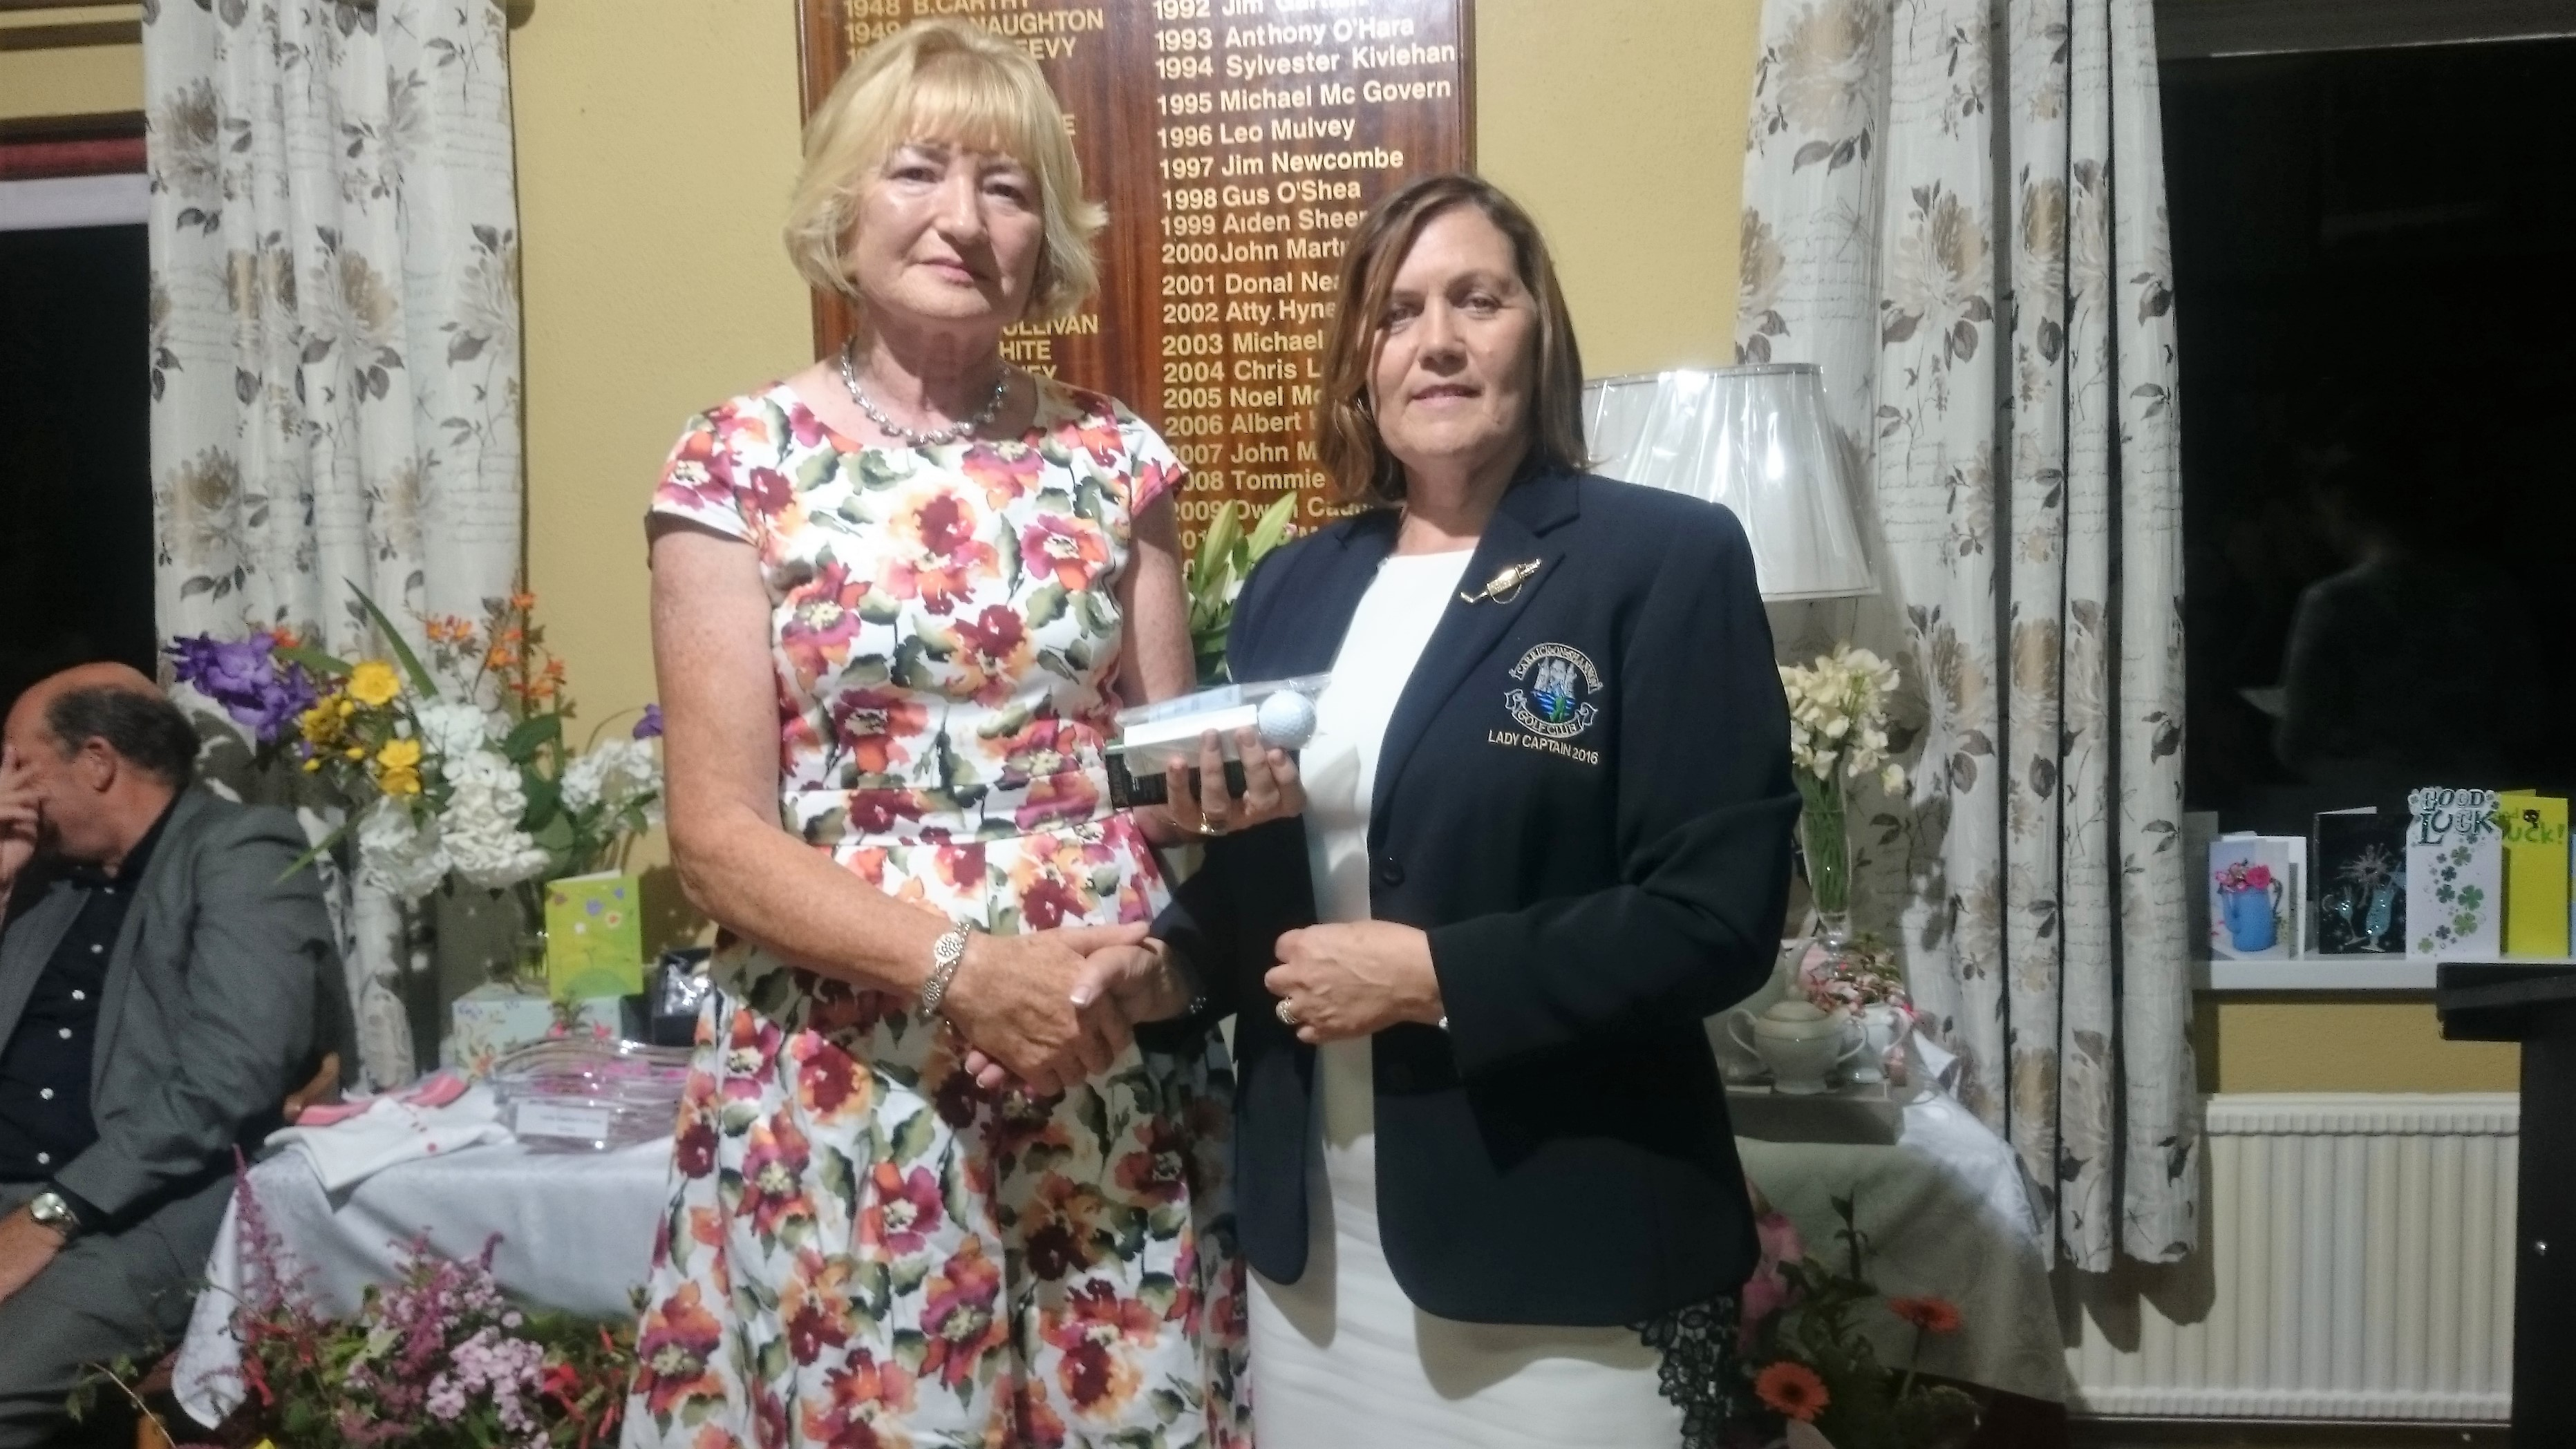 LADY CAPTAINS DAY: Kathleen O'Dowd(3rd Beginner Lady's), Lady Captain Noeleen Moffatt